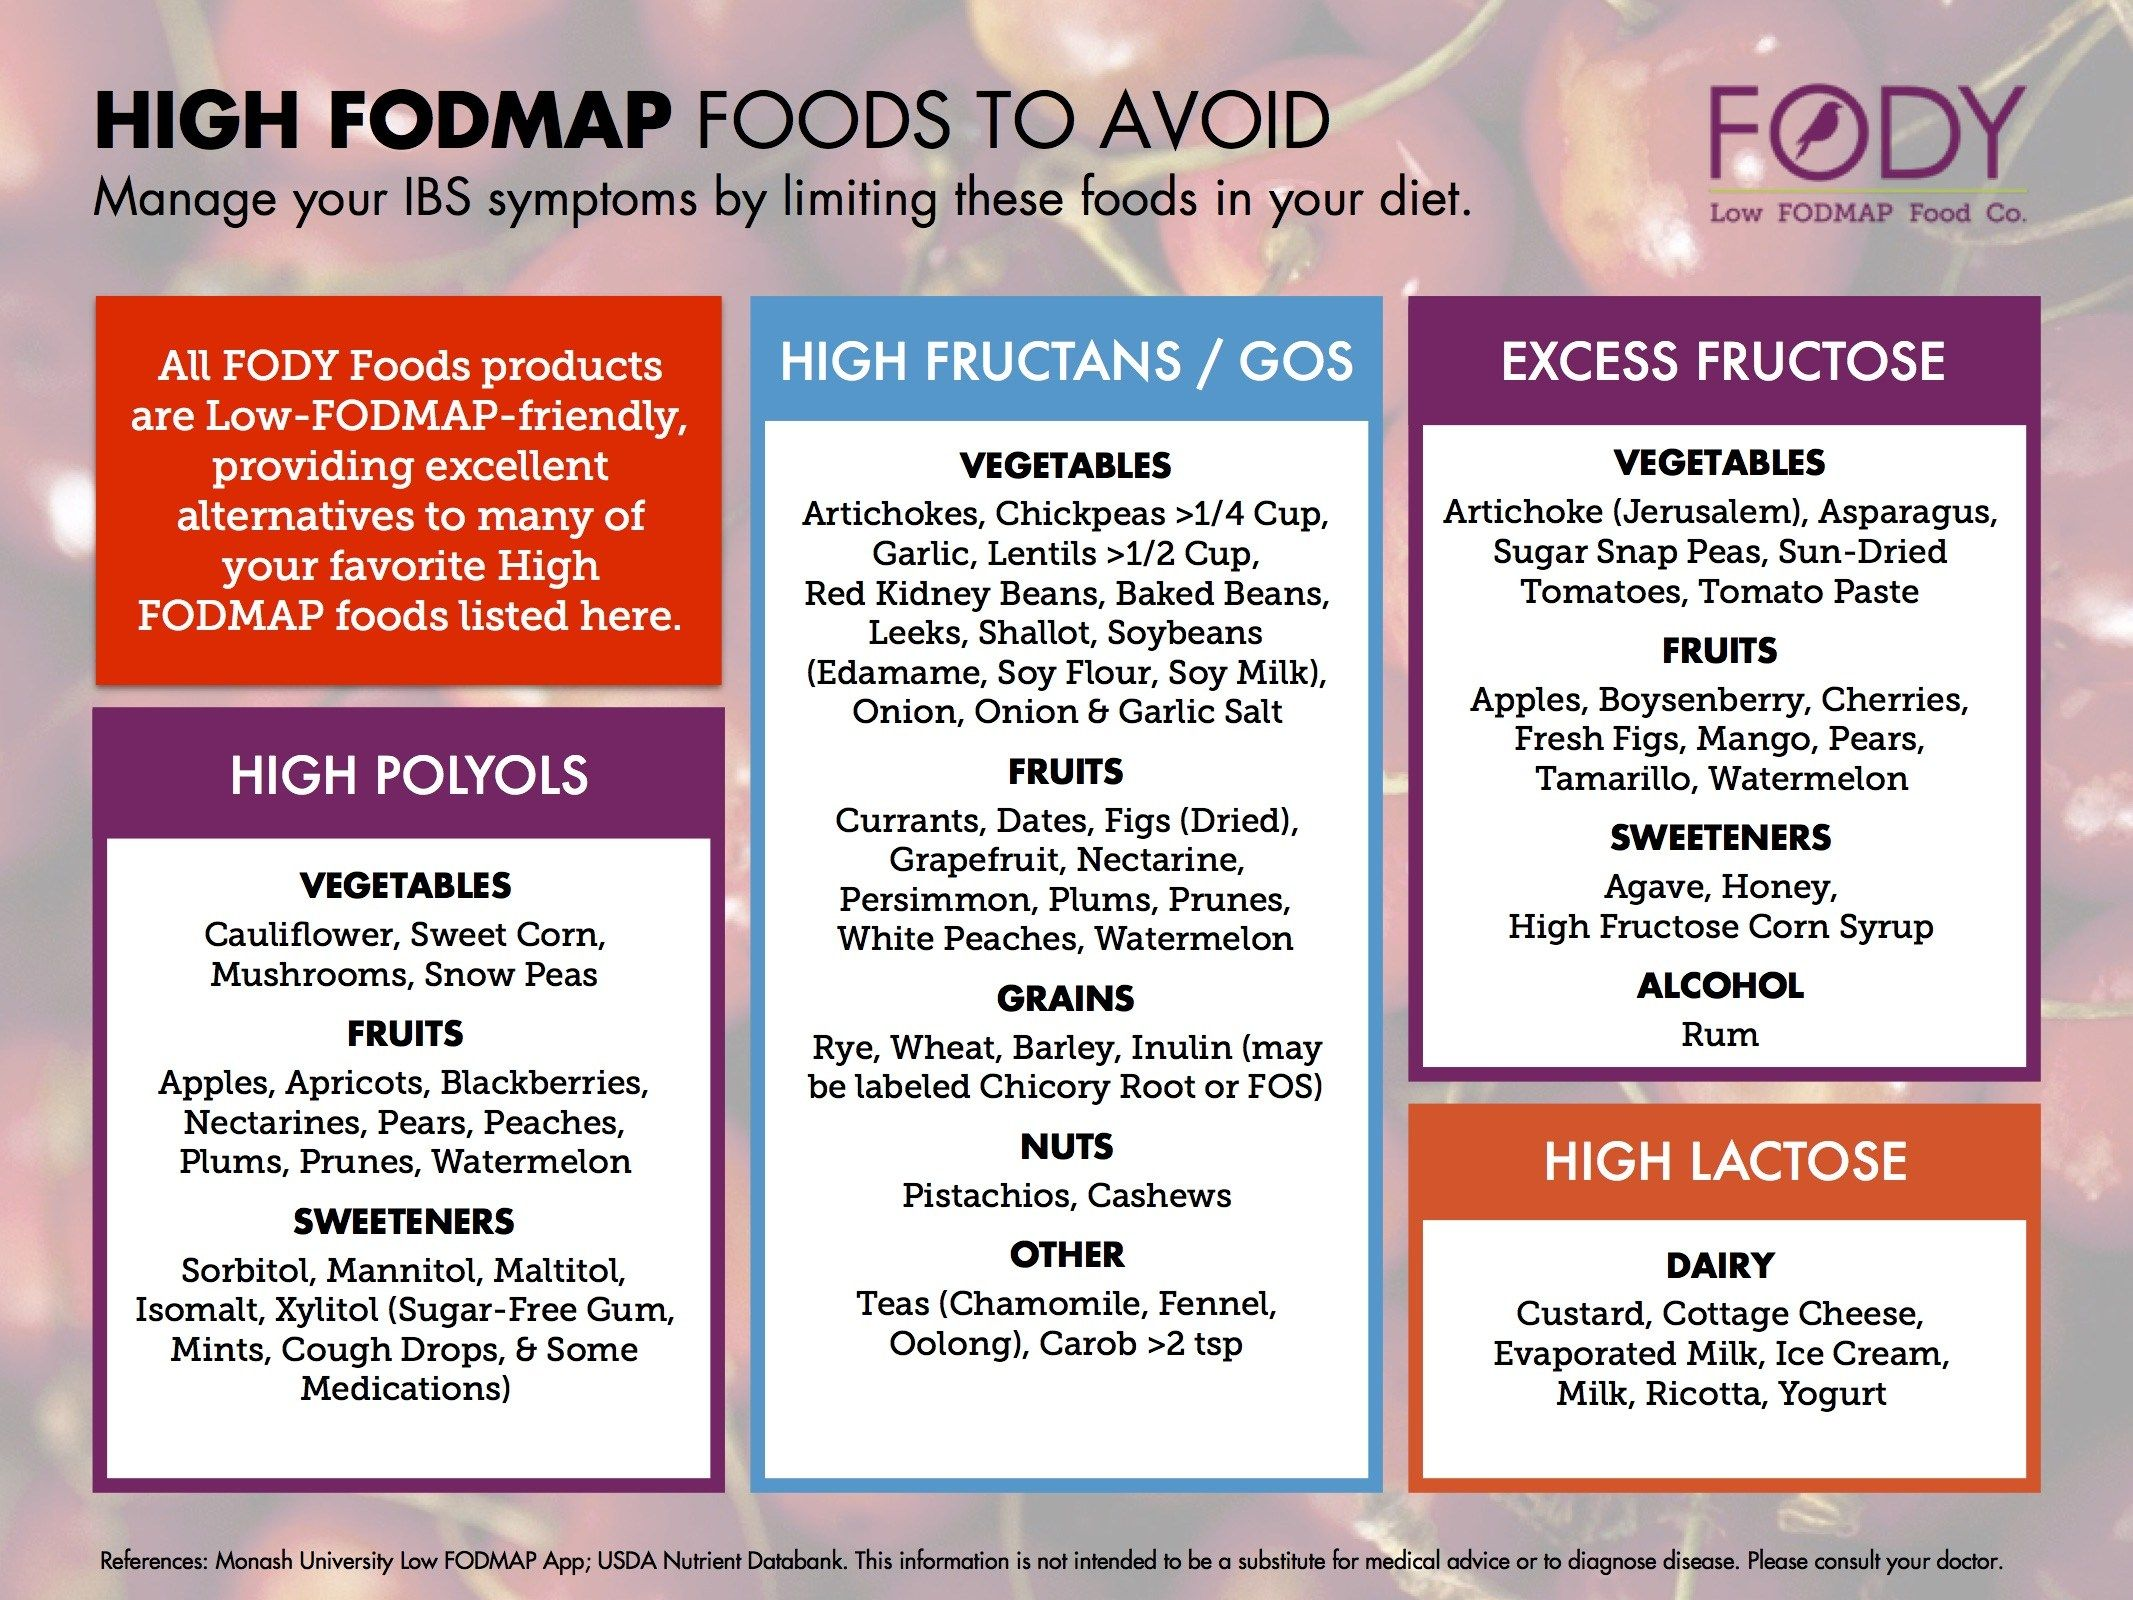 Fody food co low fodmap products resources fodmap resources fody food co low fodmap products resources publicscrutiny Choice Image